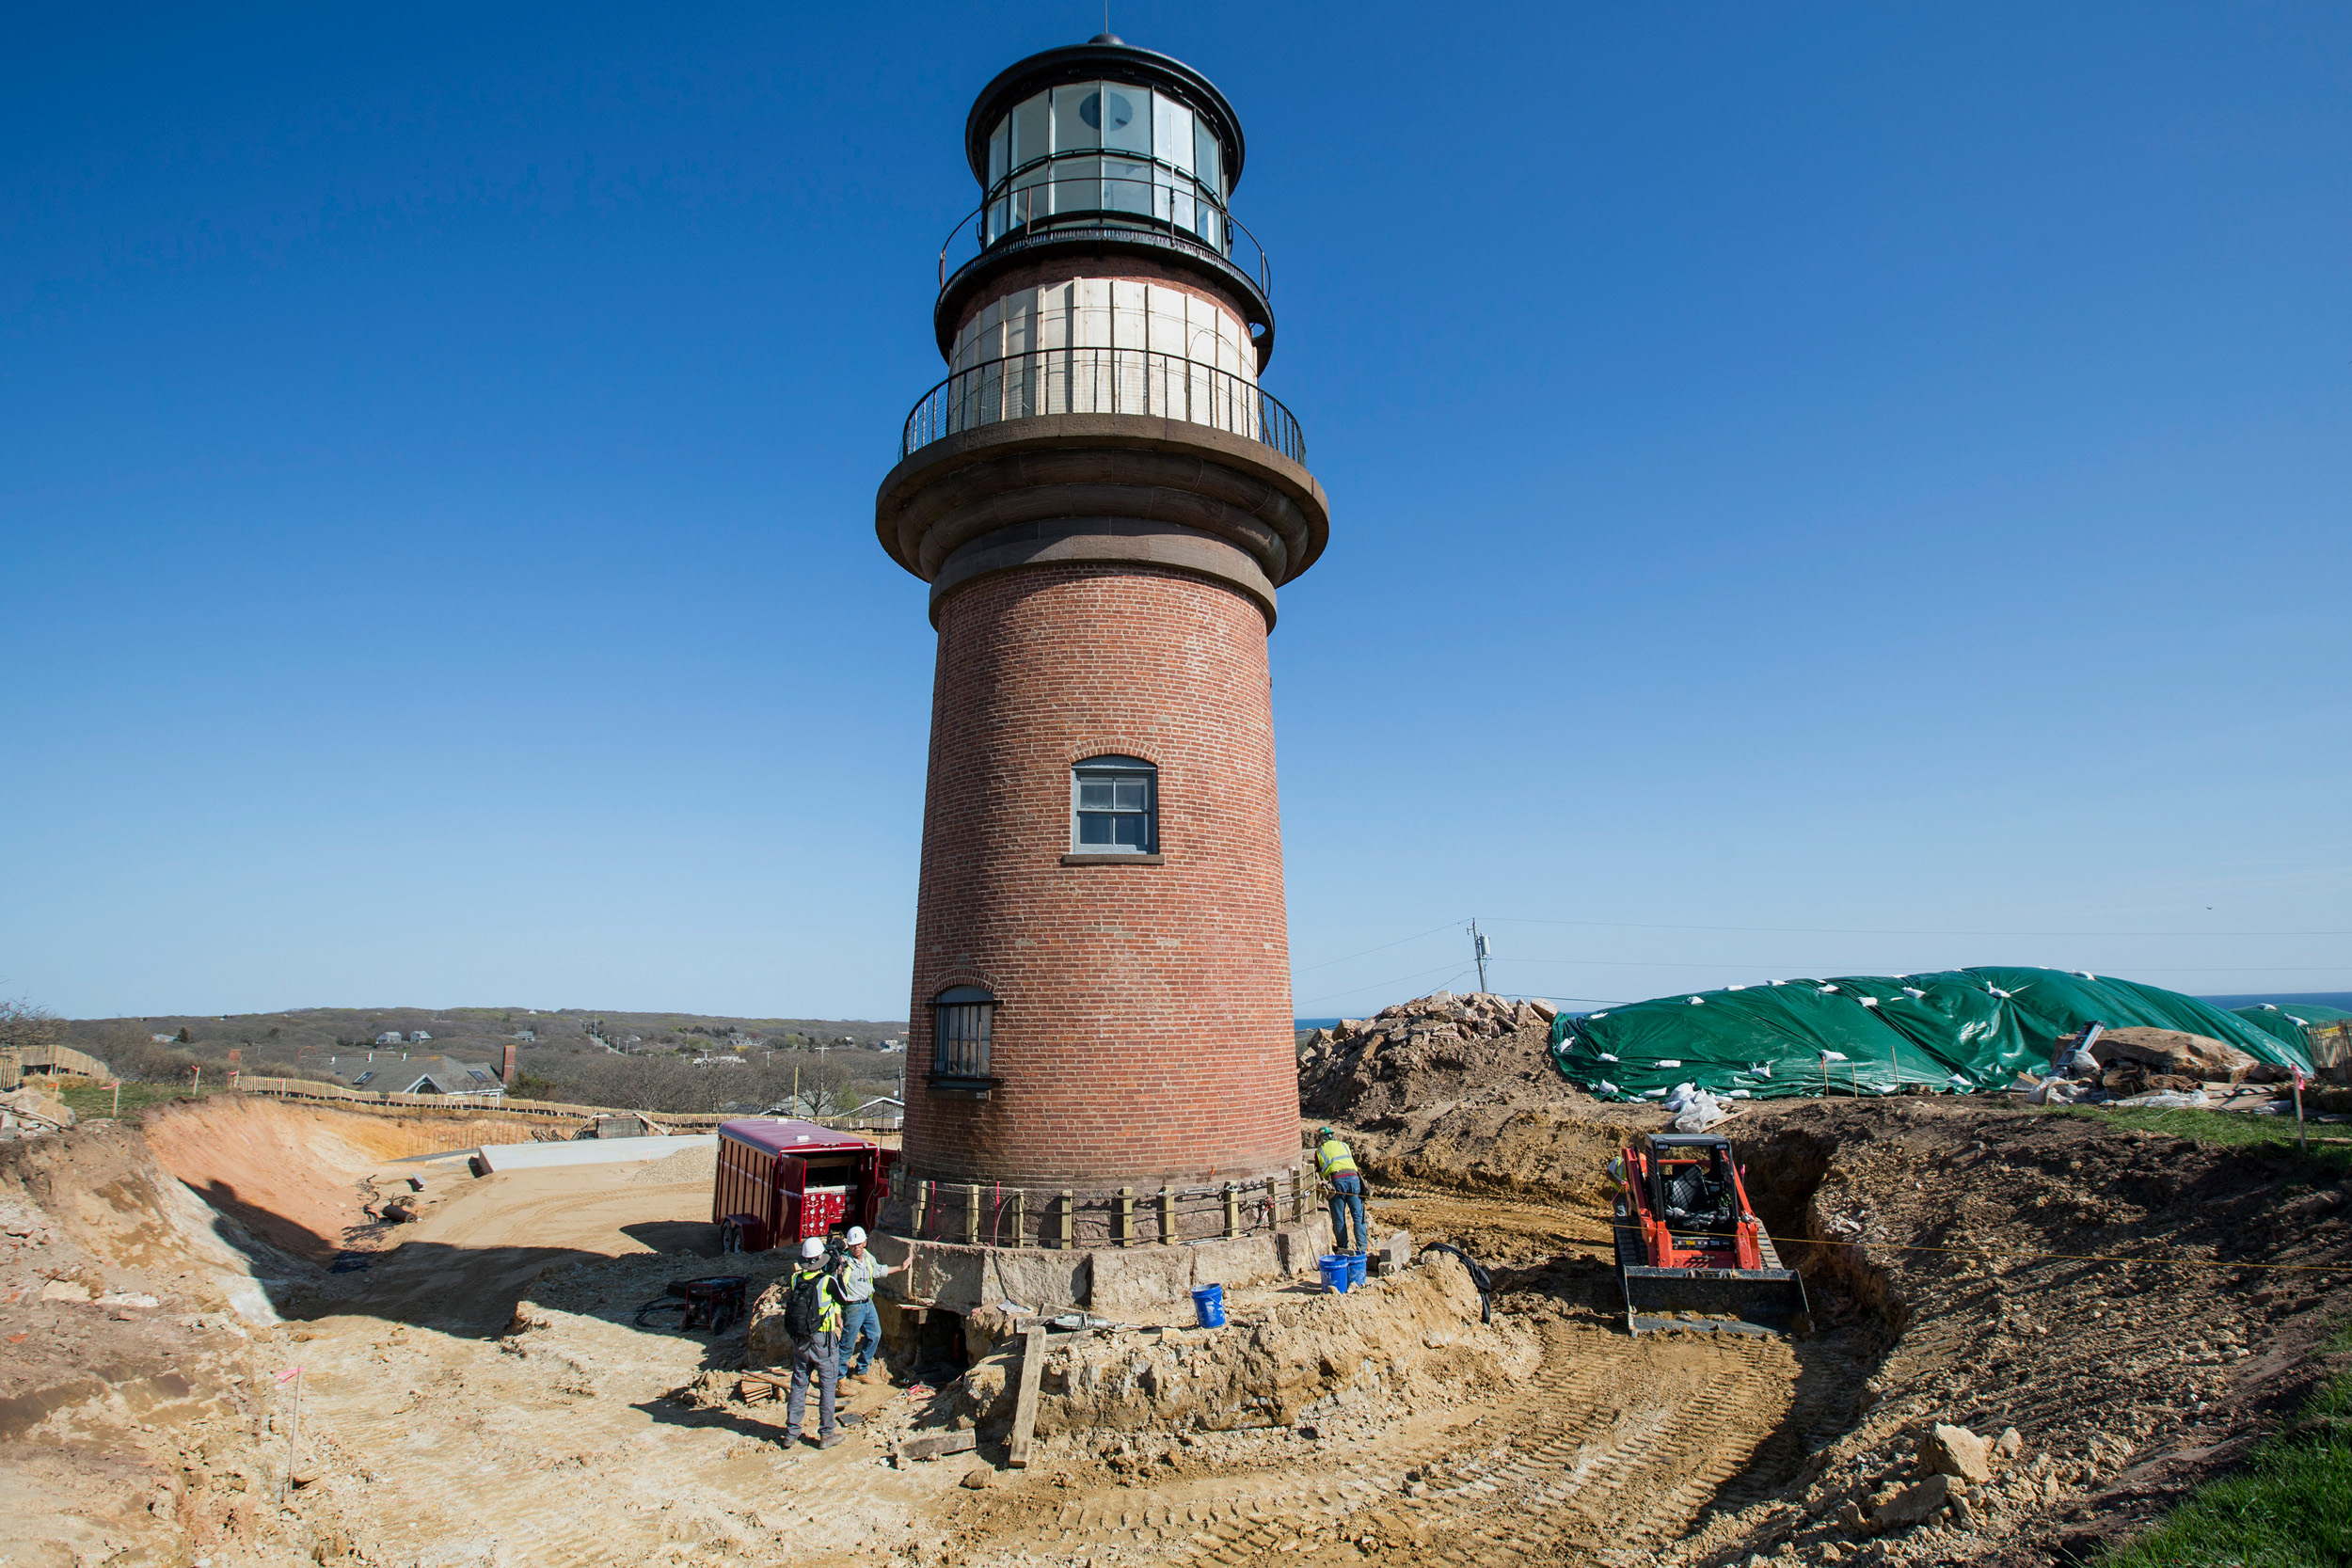 Aquinnah restaurant, iconic gay head property, goes on the market